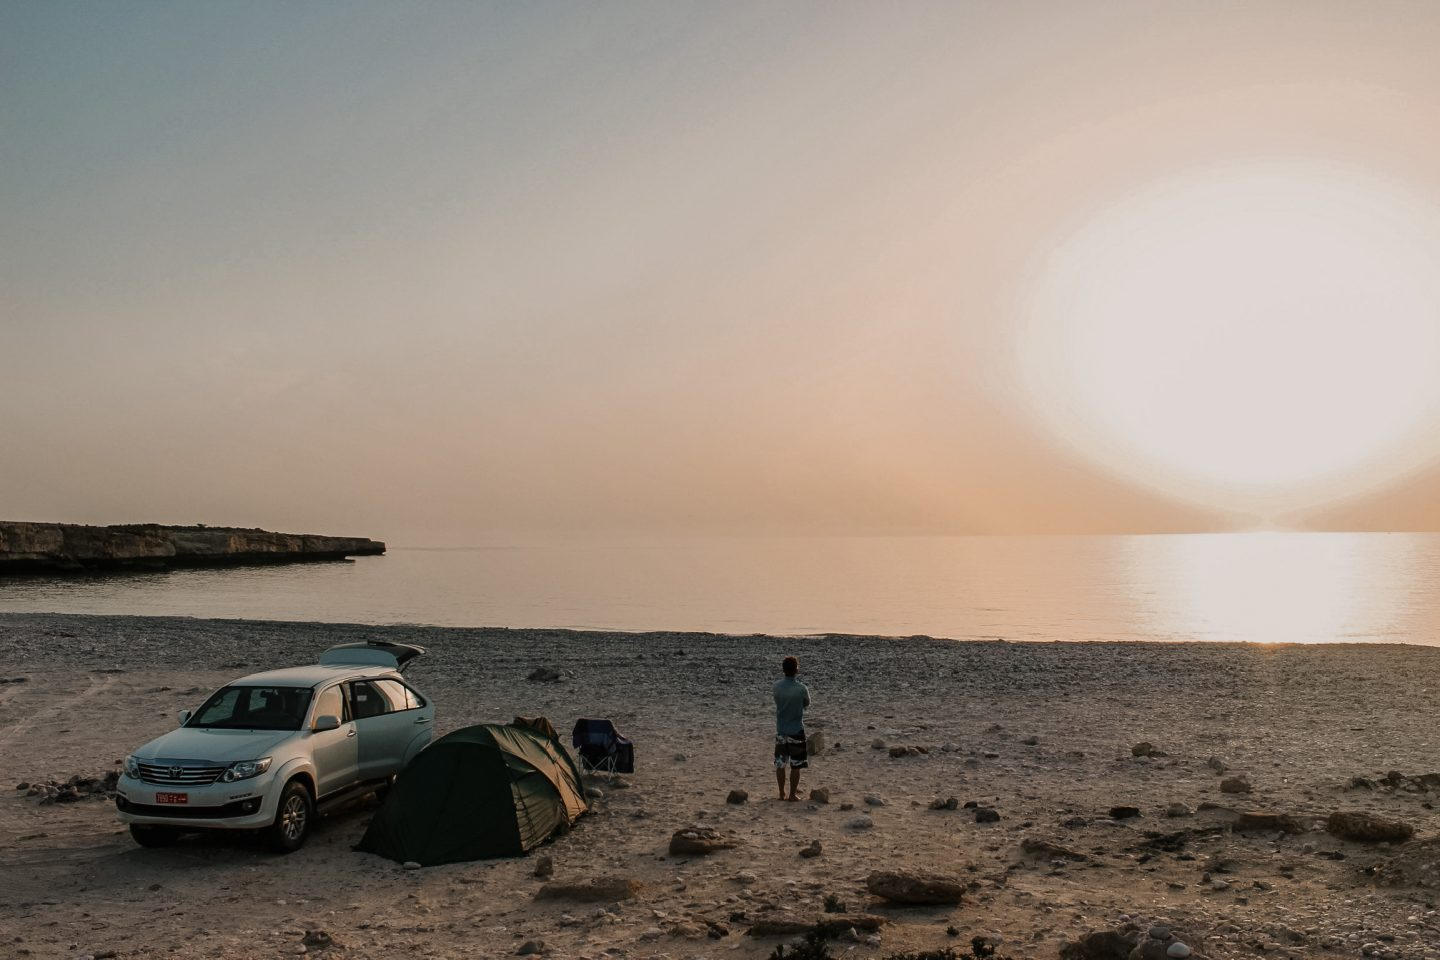 Camping in Oman on the beach